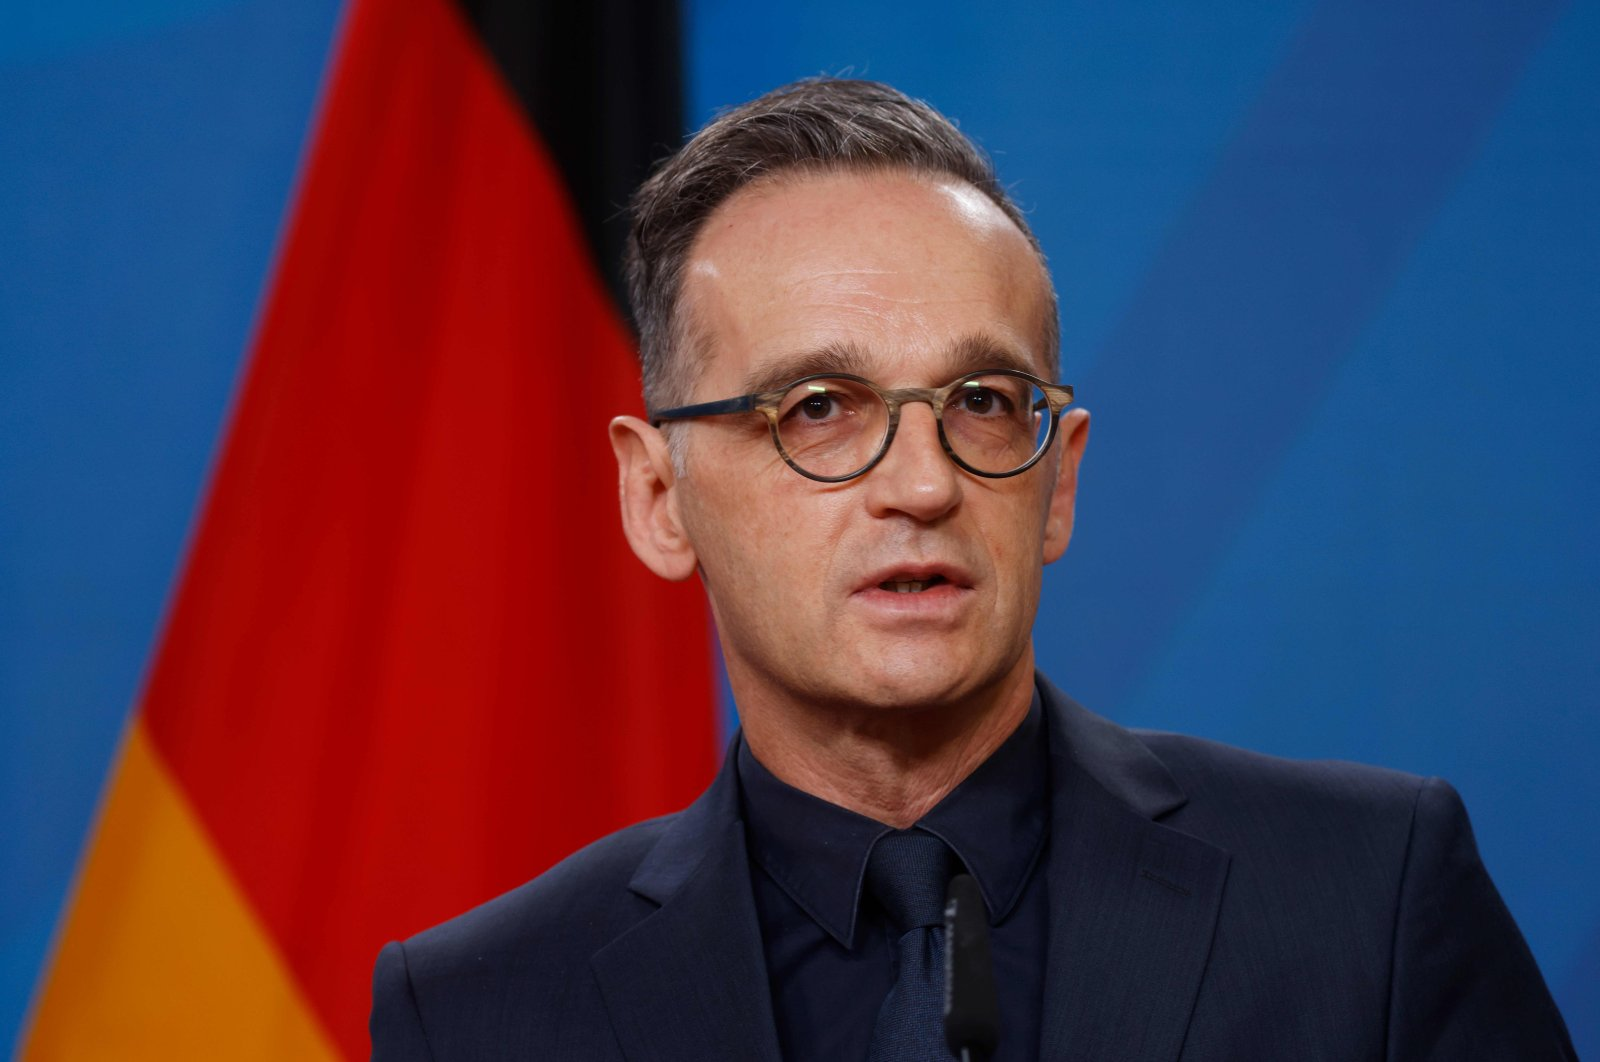 German Foreign Minister Heiko Maas speaks during a news conference with his counterpart from the Republic of Kosovo at the Federal Foreign Office, in Berlin, Germany, Nov. 3, 2020. (AFP Photo)